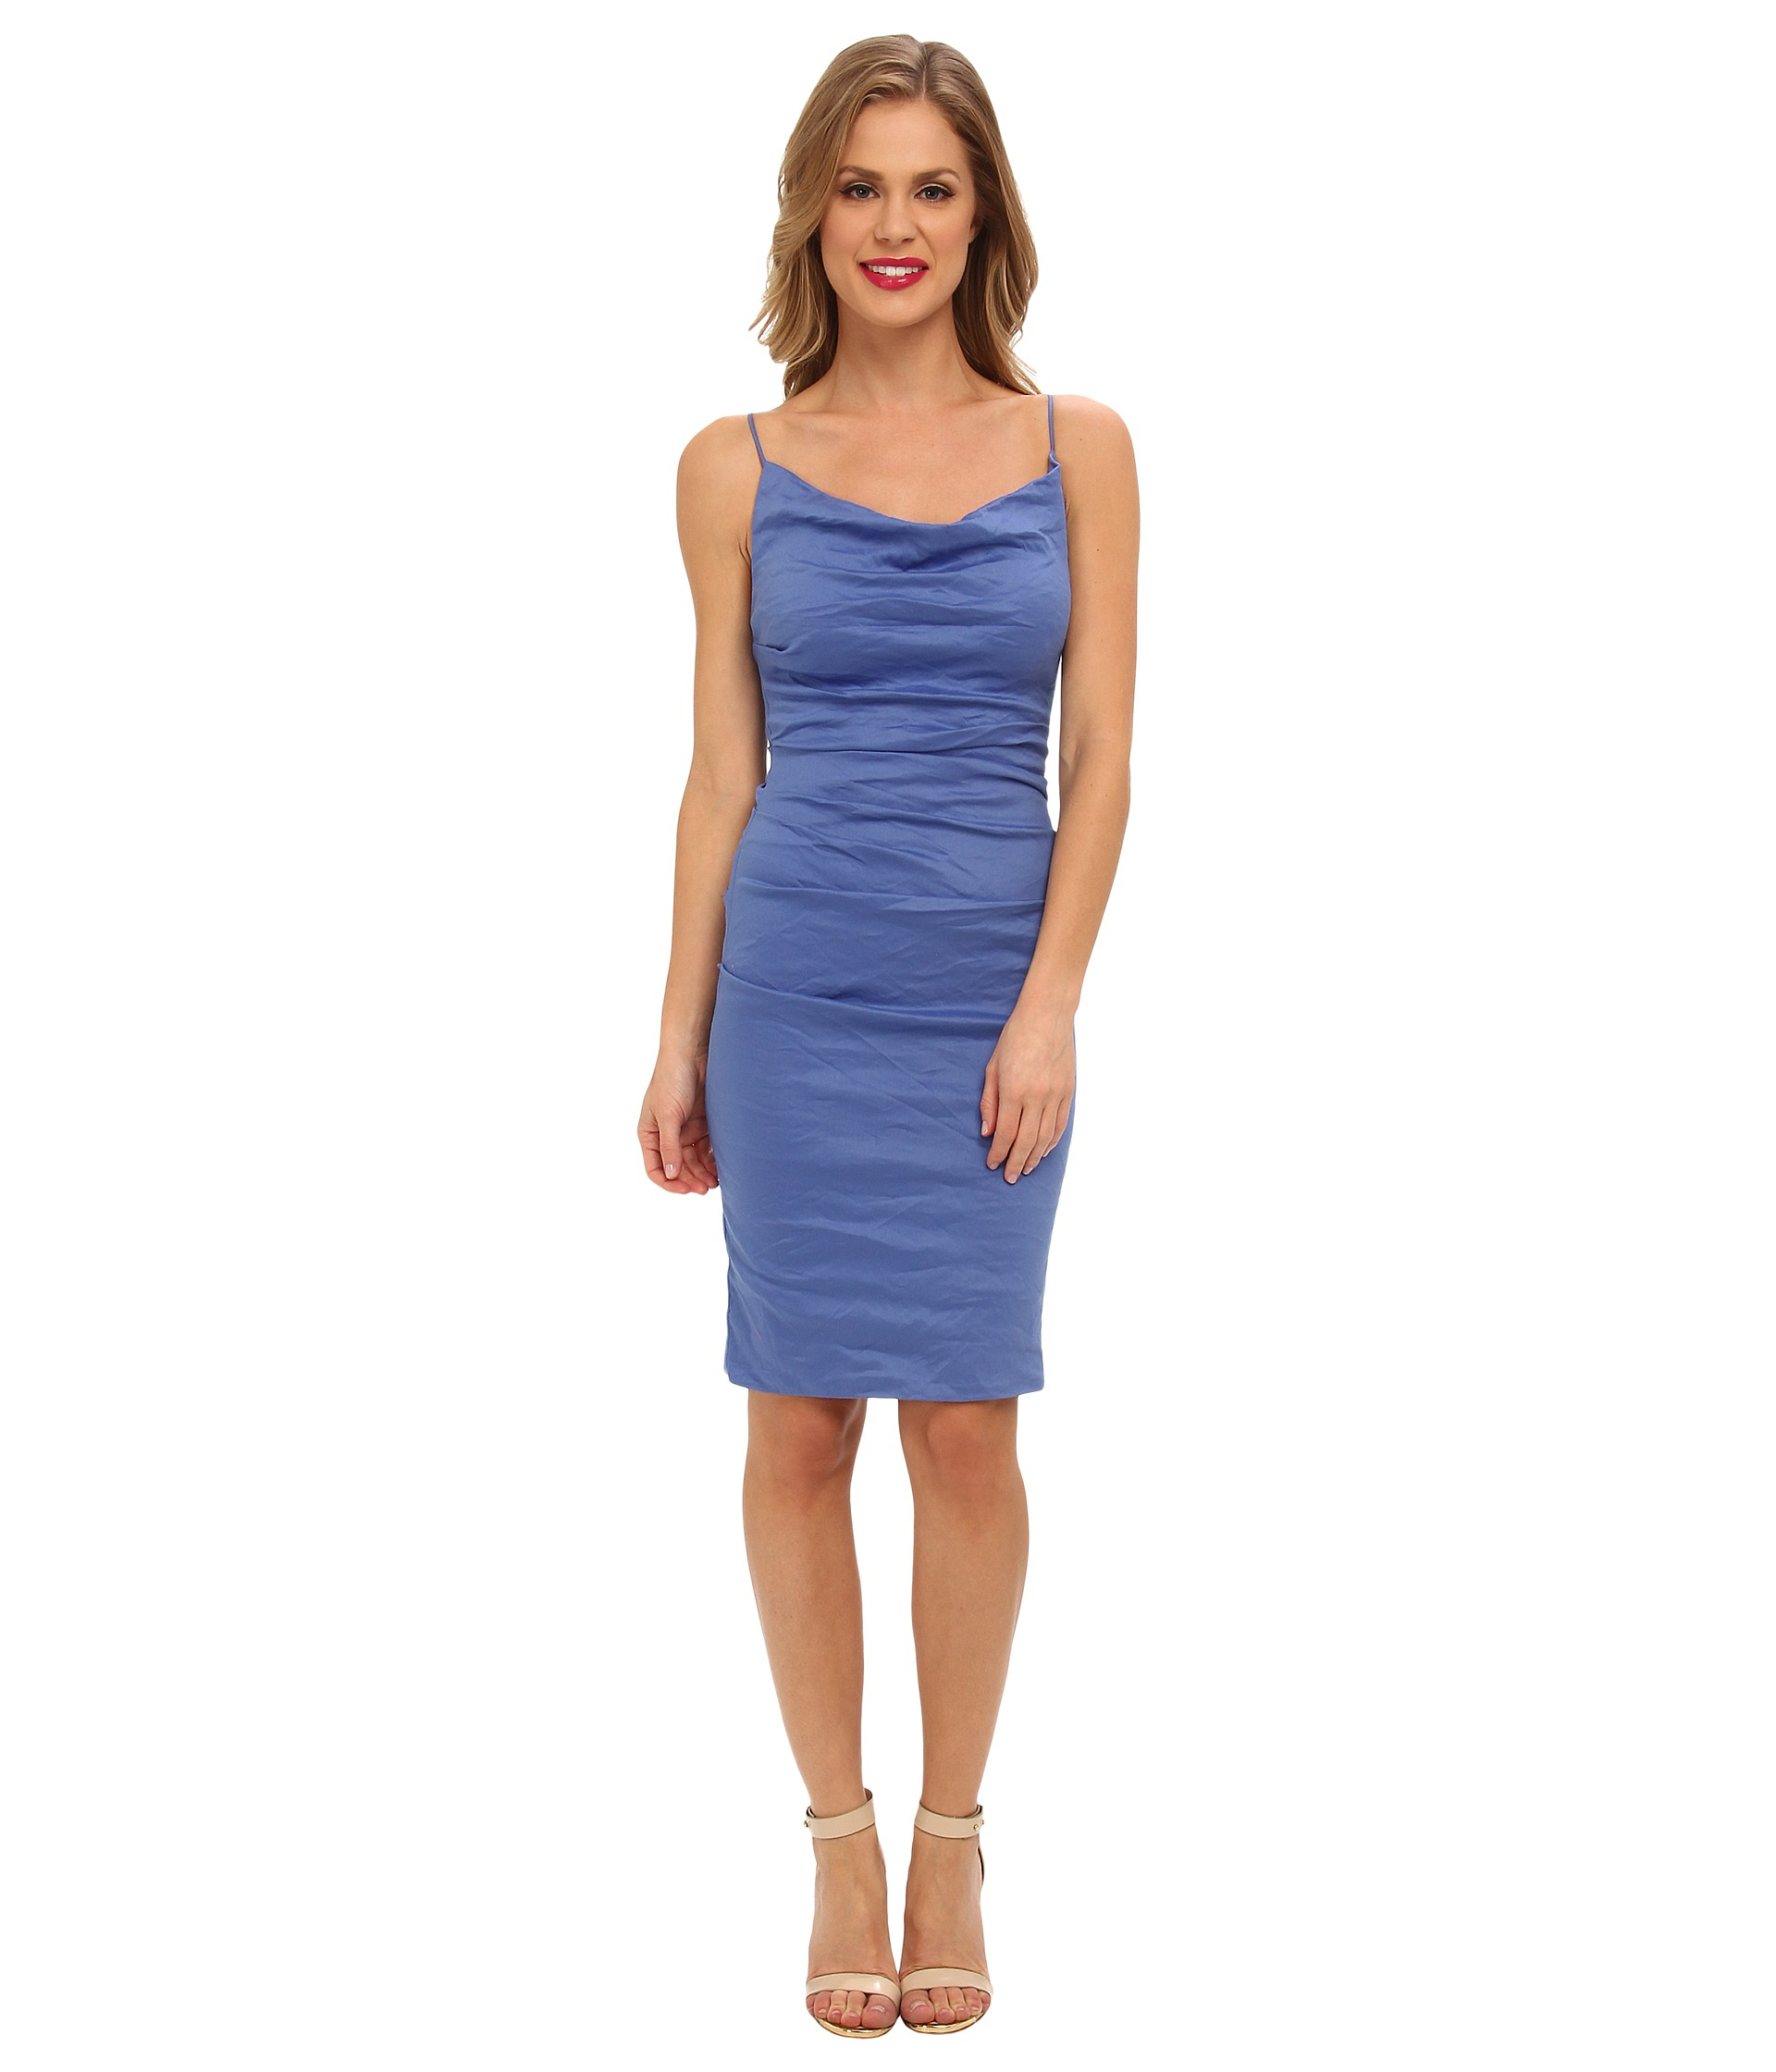 Carly dress - Blue Nicole Miller 7YmbMEd8